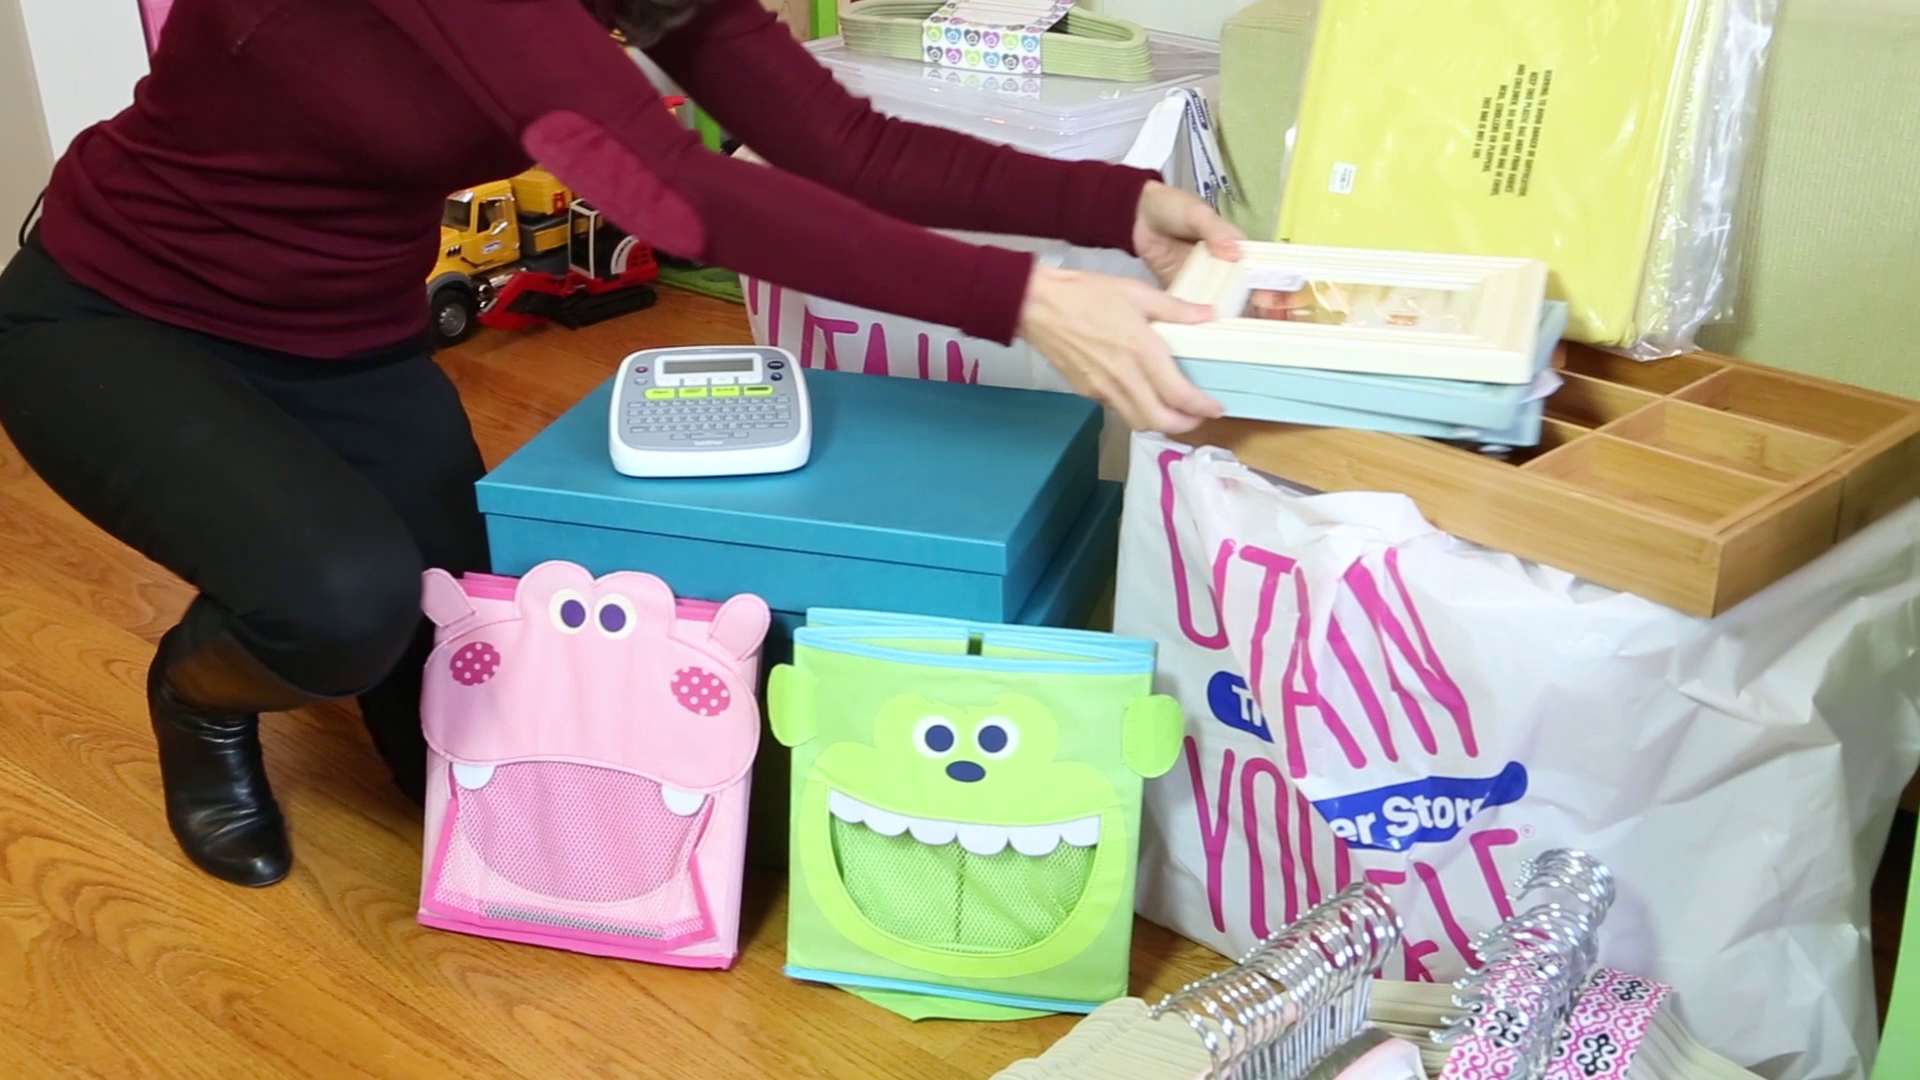 Organize Household Supplies Like a Pro